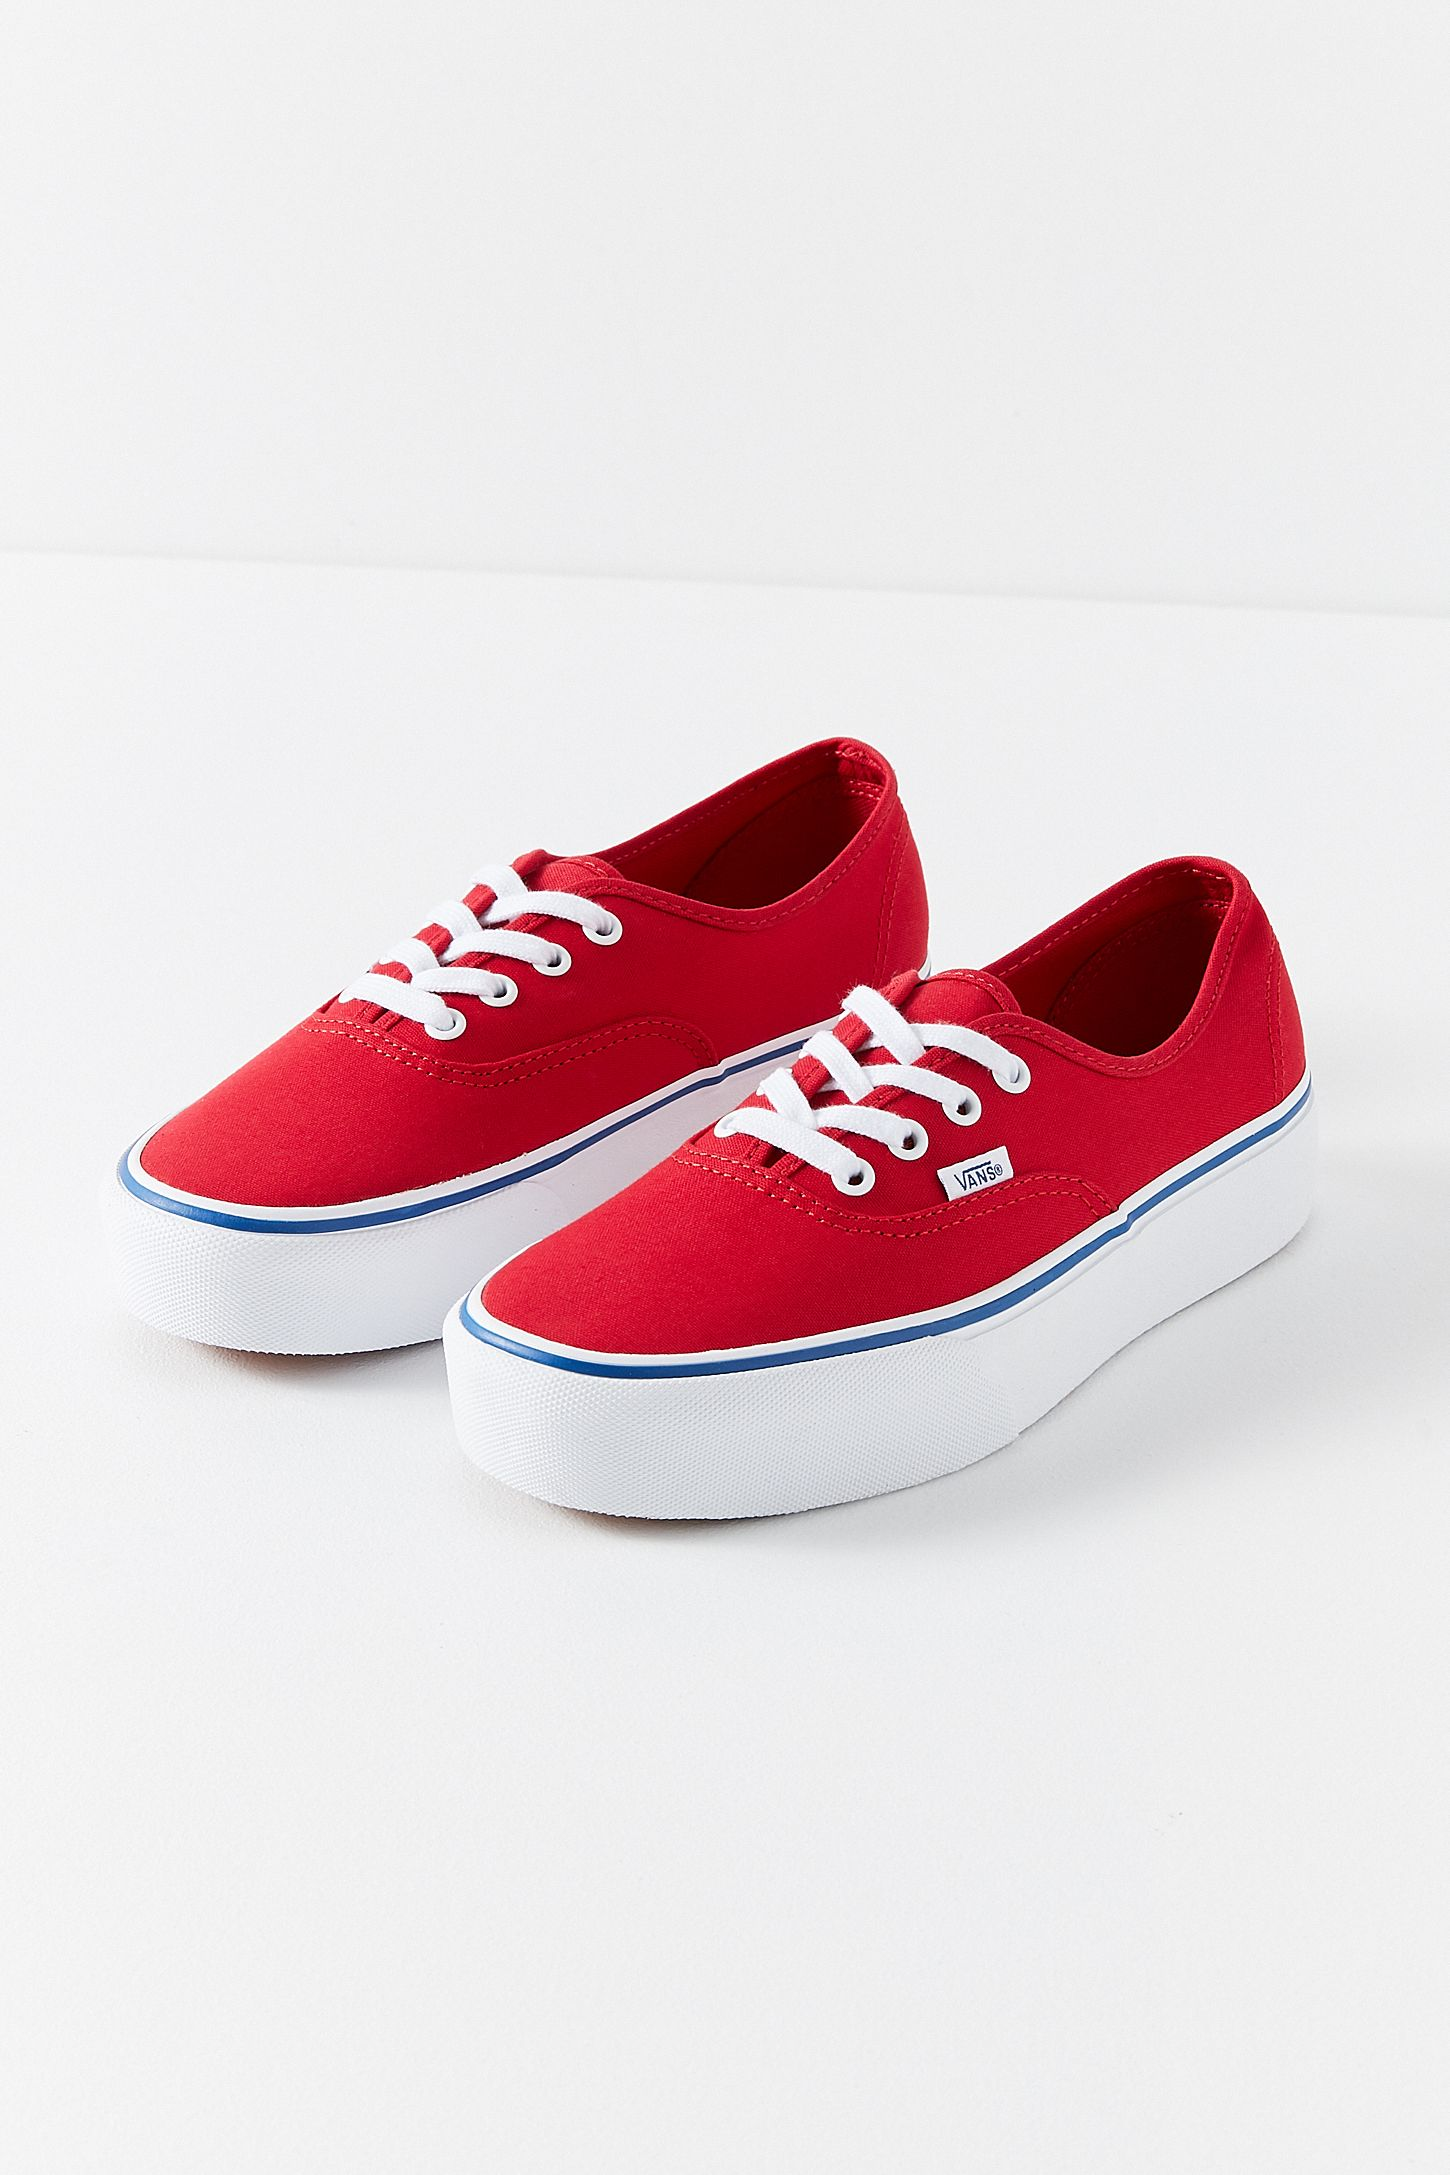 fef44f23125 Vans Authentic Platform 2.0 Sneaker   Urban Outfitters